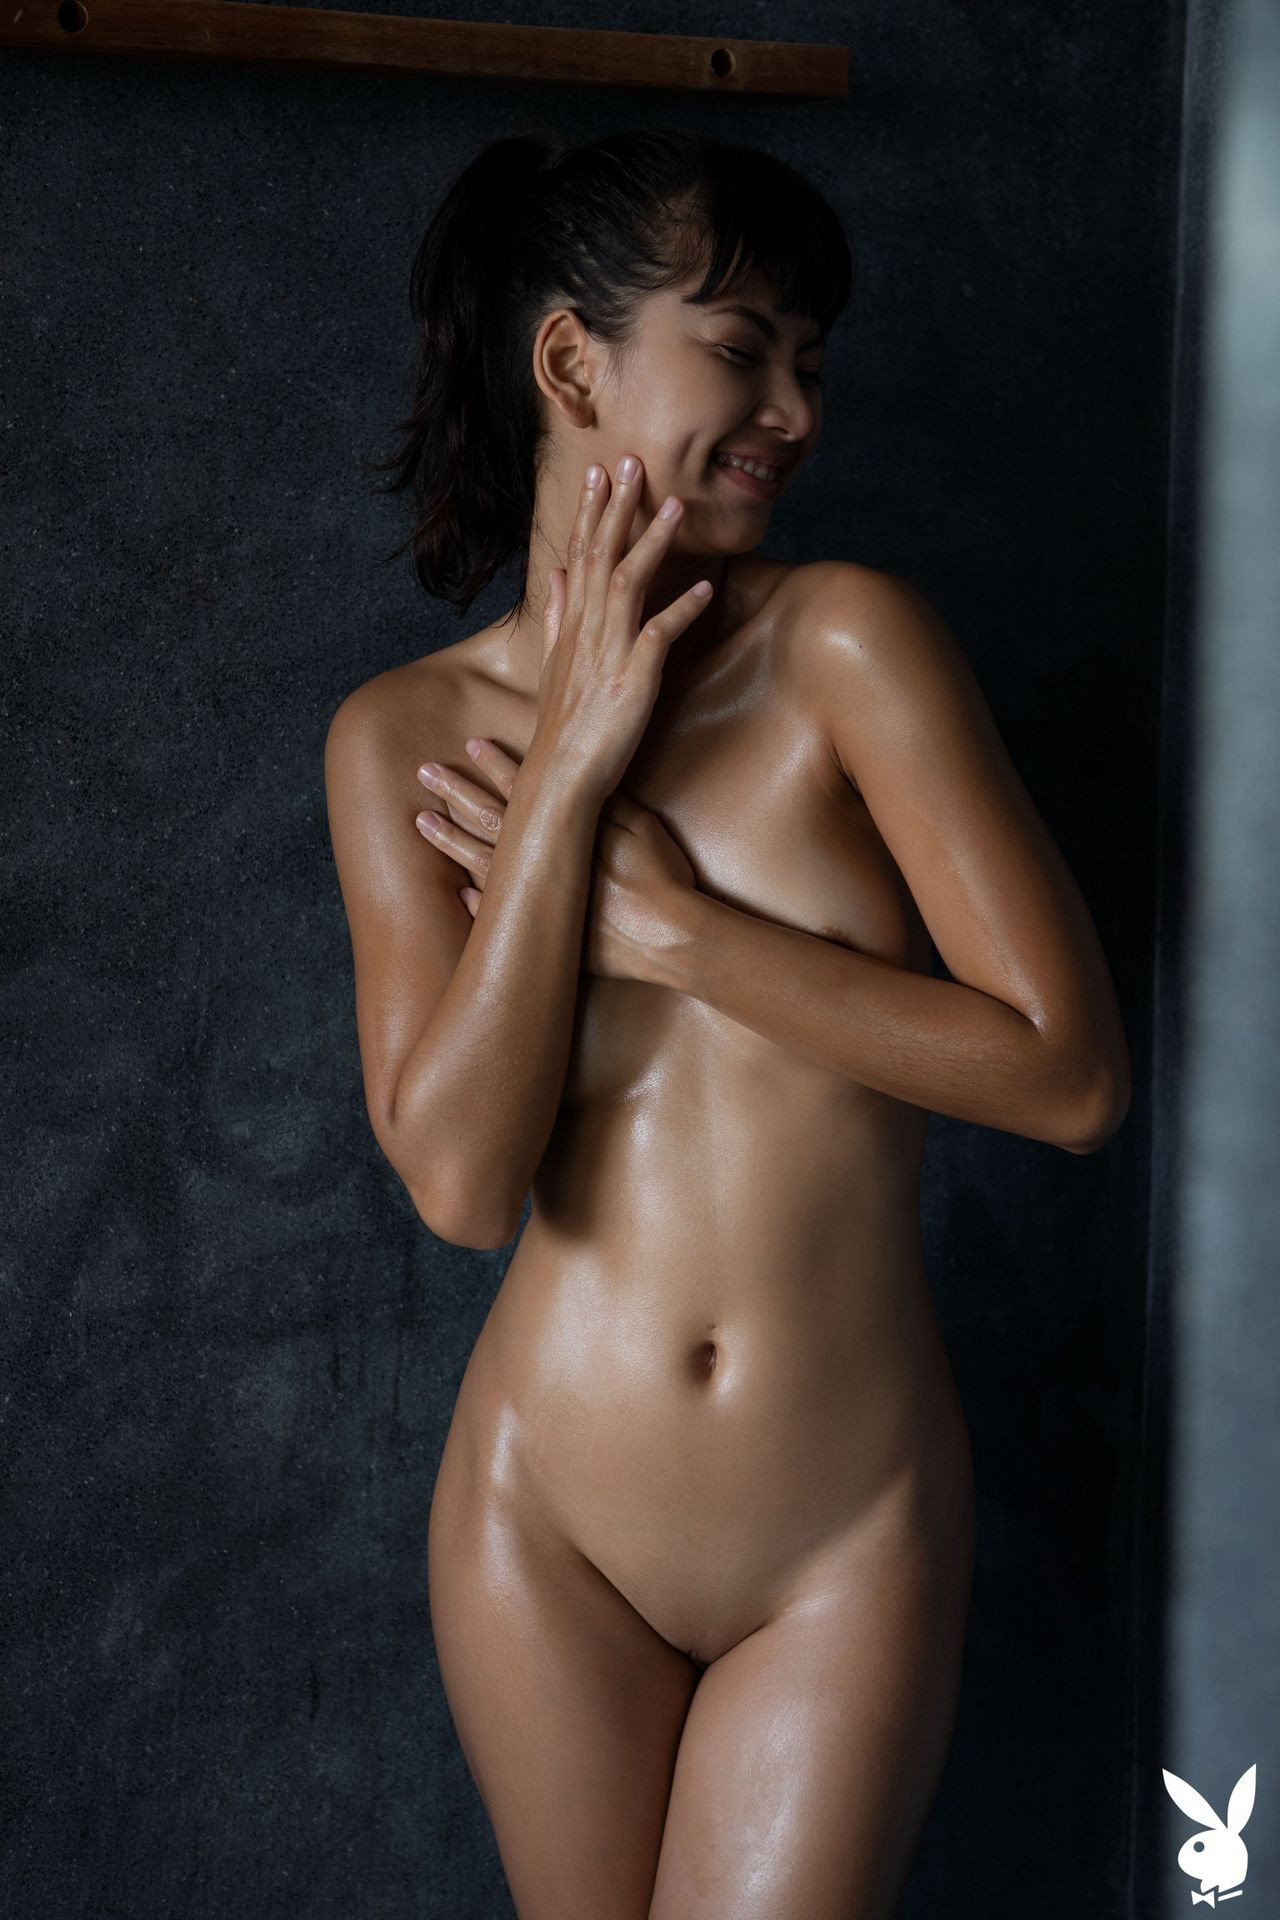 Cara Pin Nude Soft Shower thefappening.nu 3